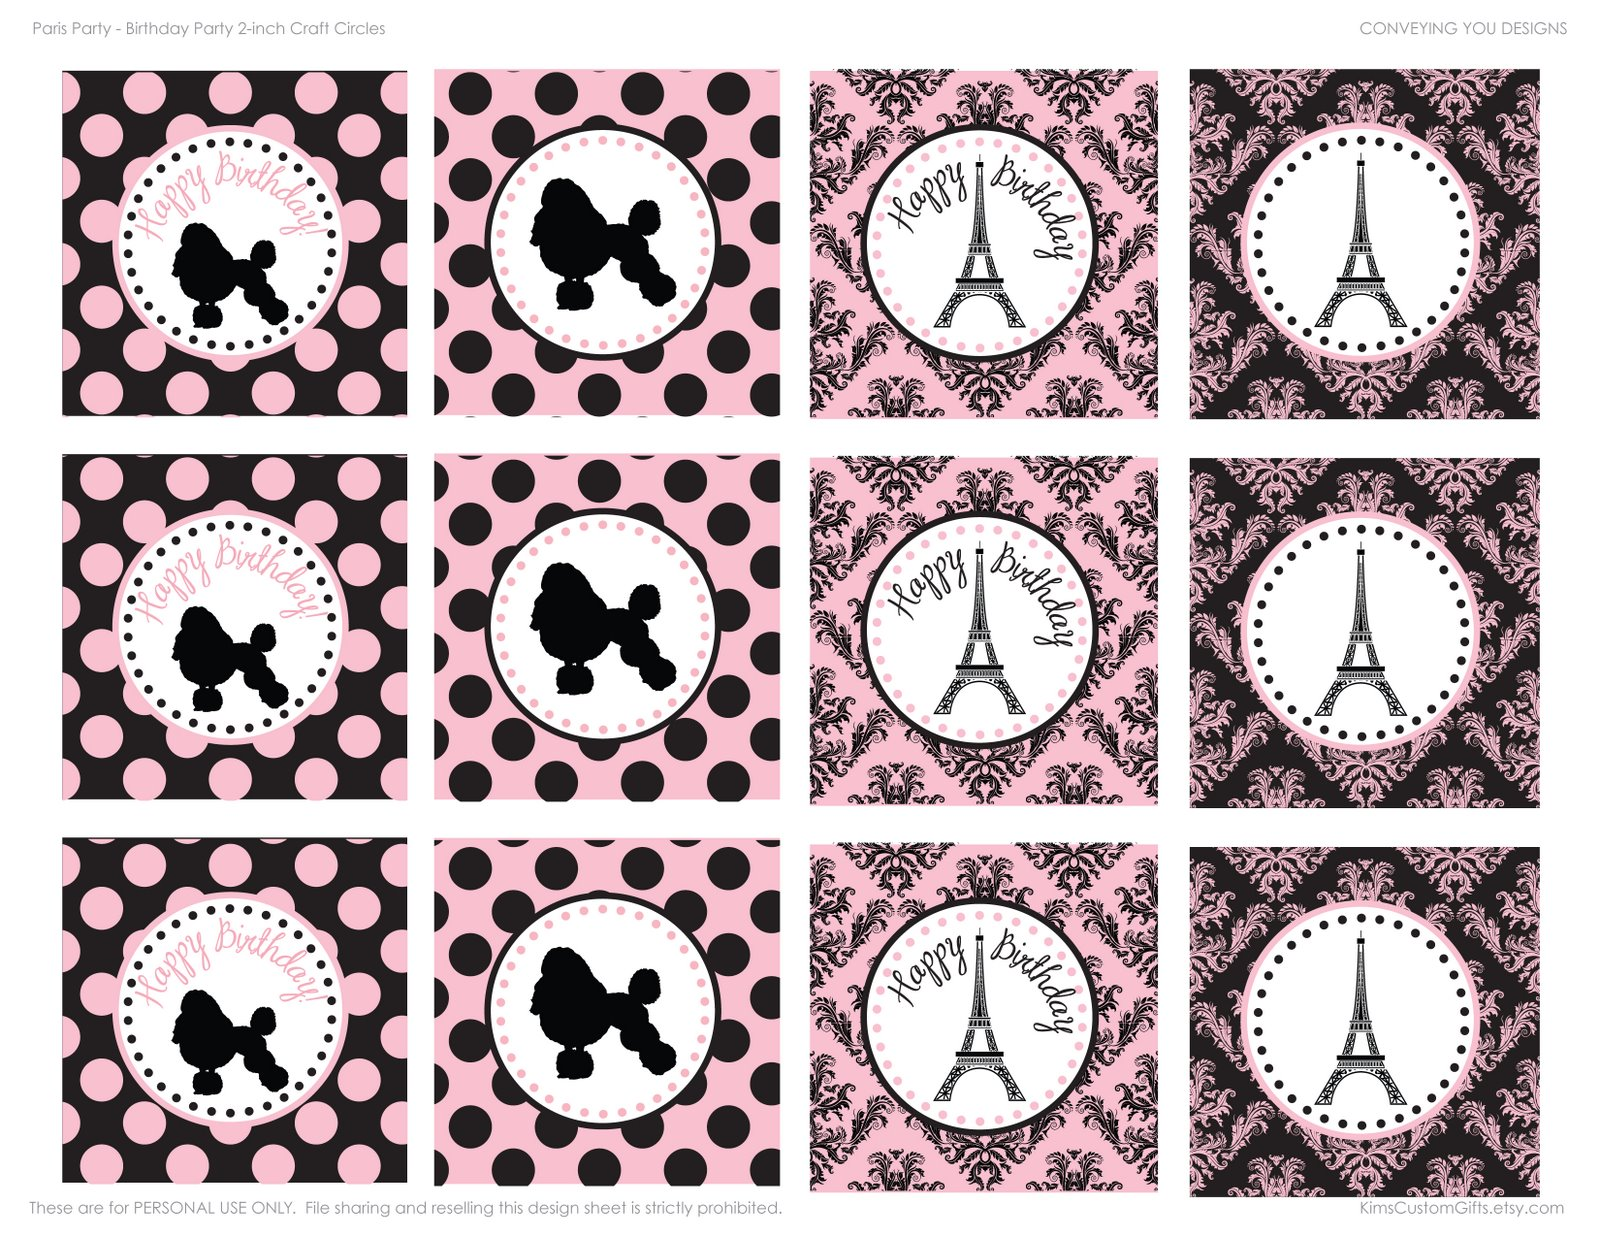 Life's a Beach...with the Tanimoto's: Pink and Black Paris ...